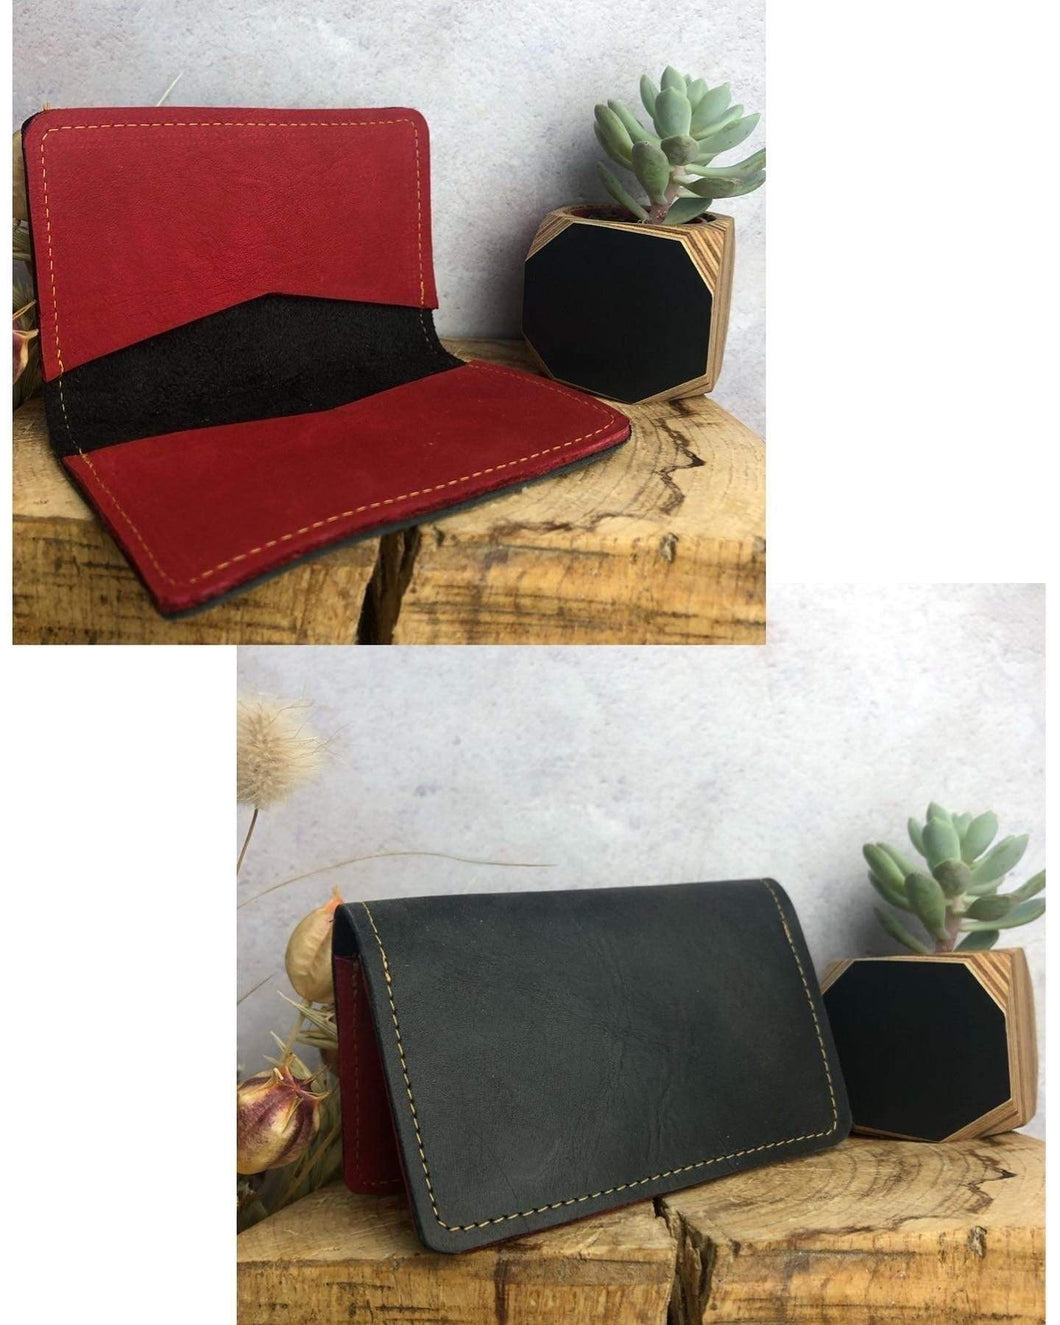 Zoe Dunn Designs Purse / Wallet Black / Ruby Card wallet/holder - soft leather